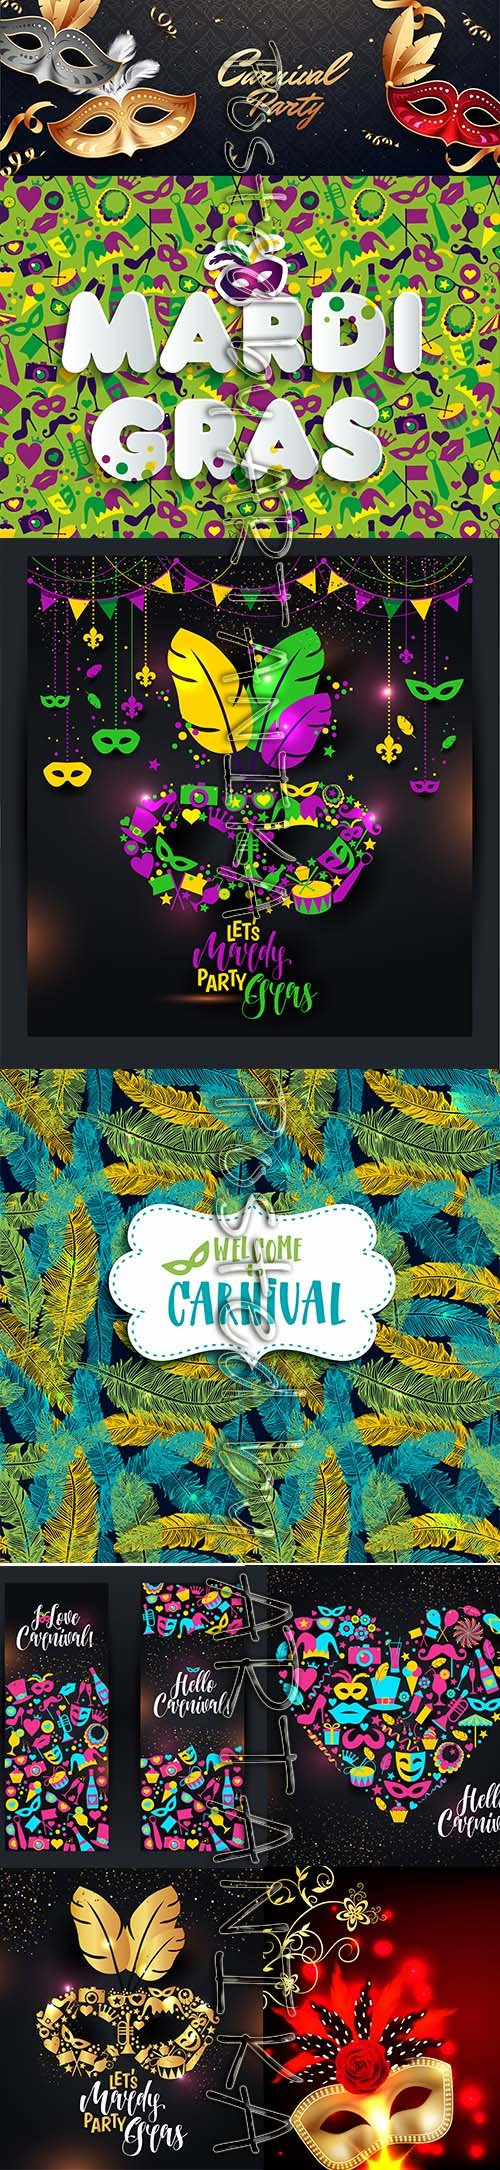 Mardi Gras Carnival Party Background Vector Pack Vol 9